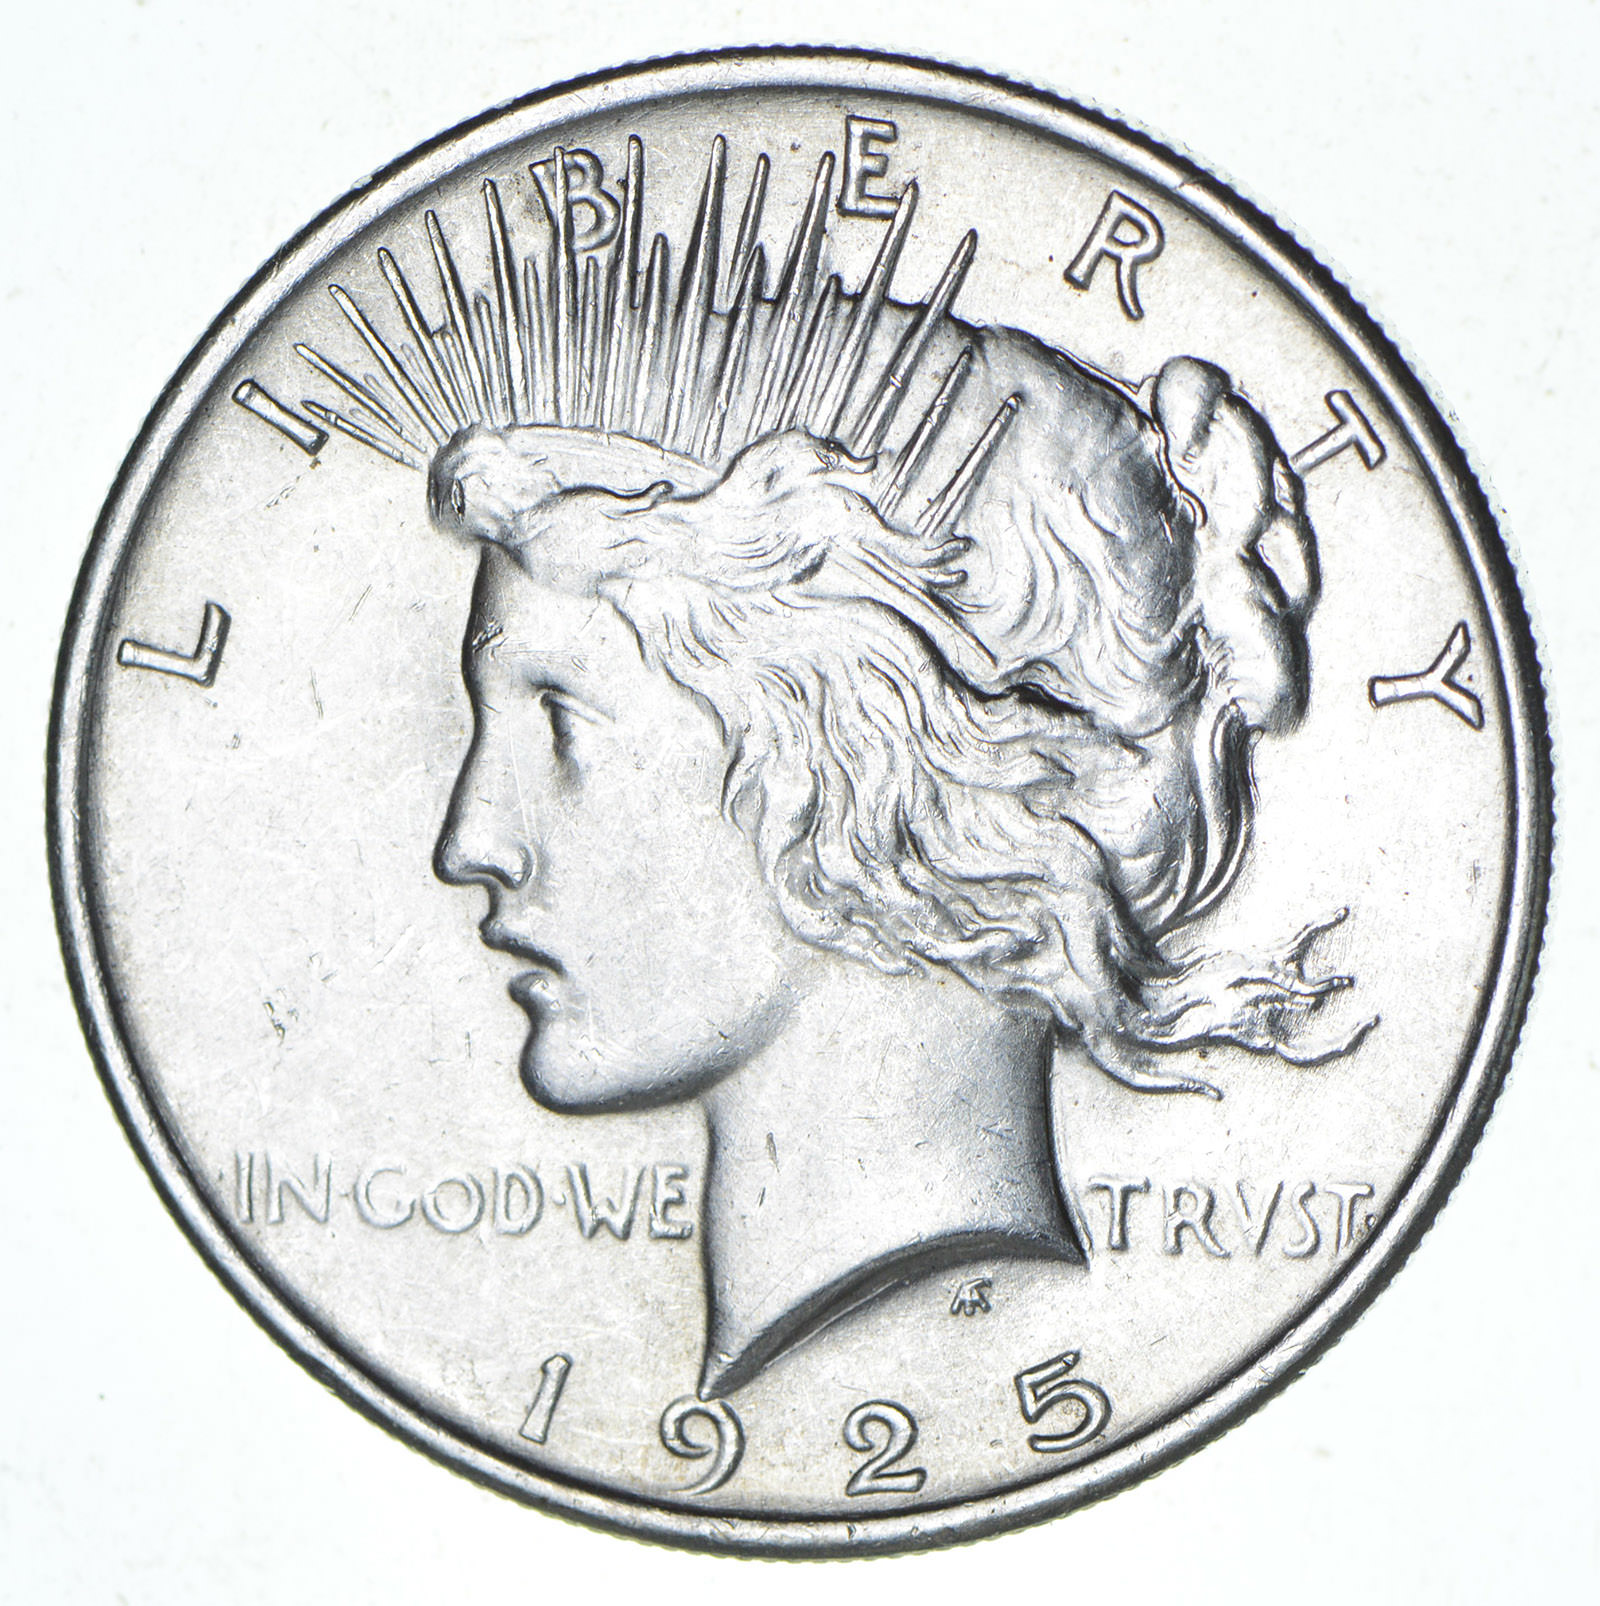 ch unc 1925 blast white peace us silver dollar property room Luxembourg 25 Cent 1927 Coin ch unc 1925 blast white peace us silver dollar